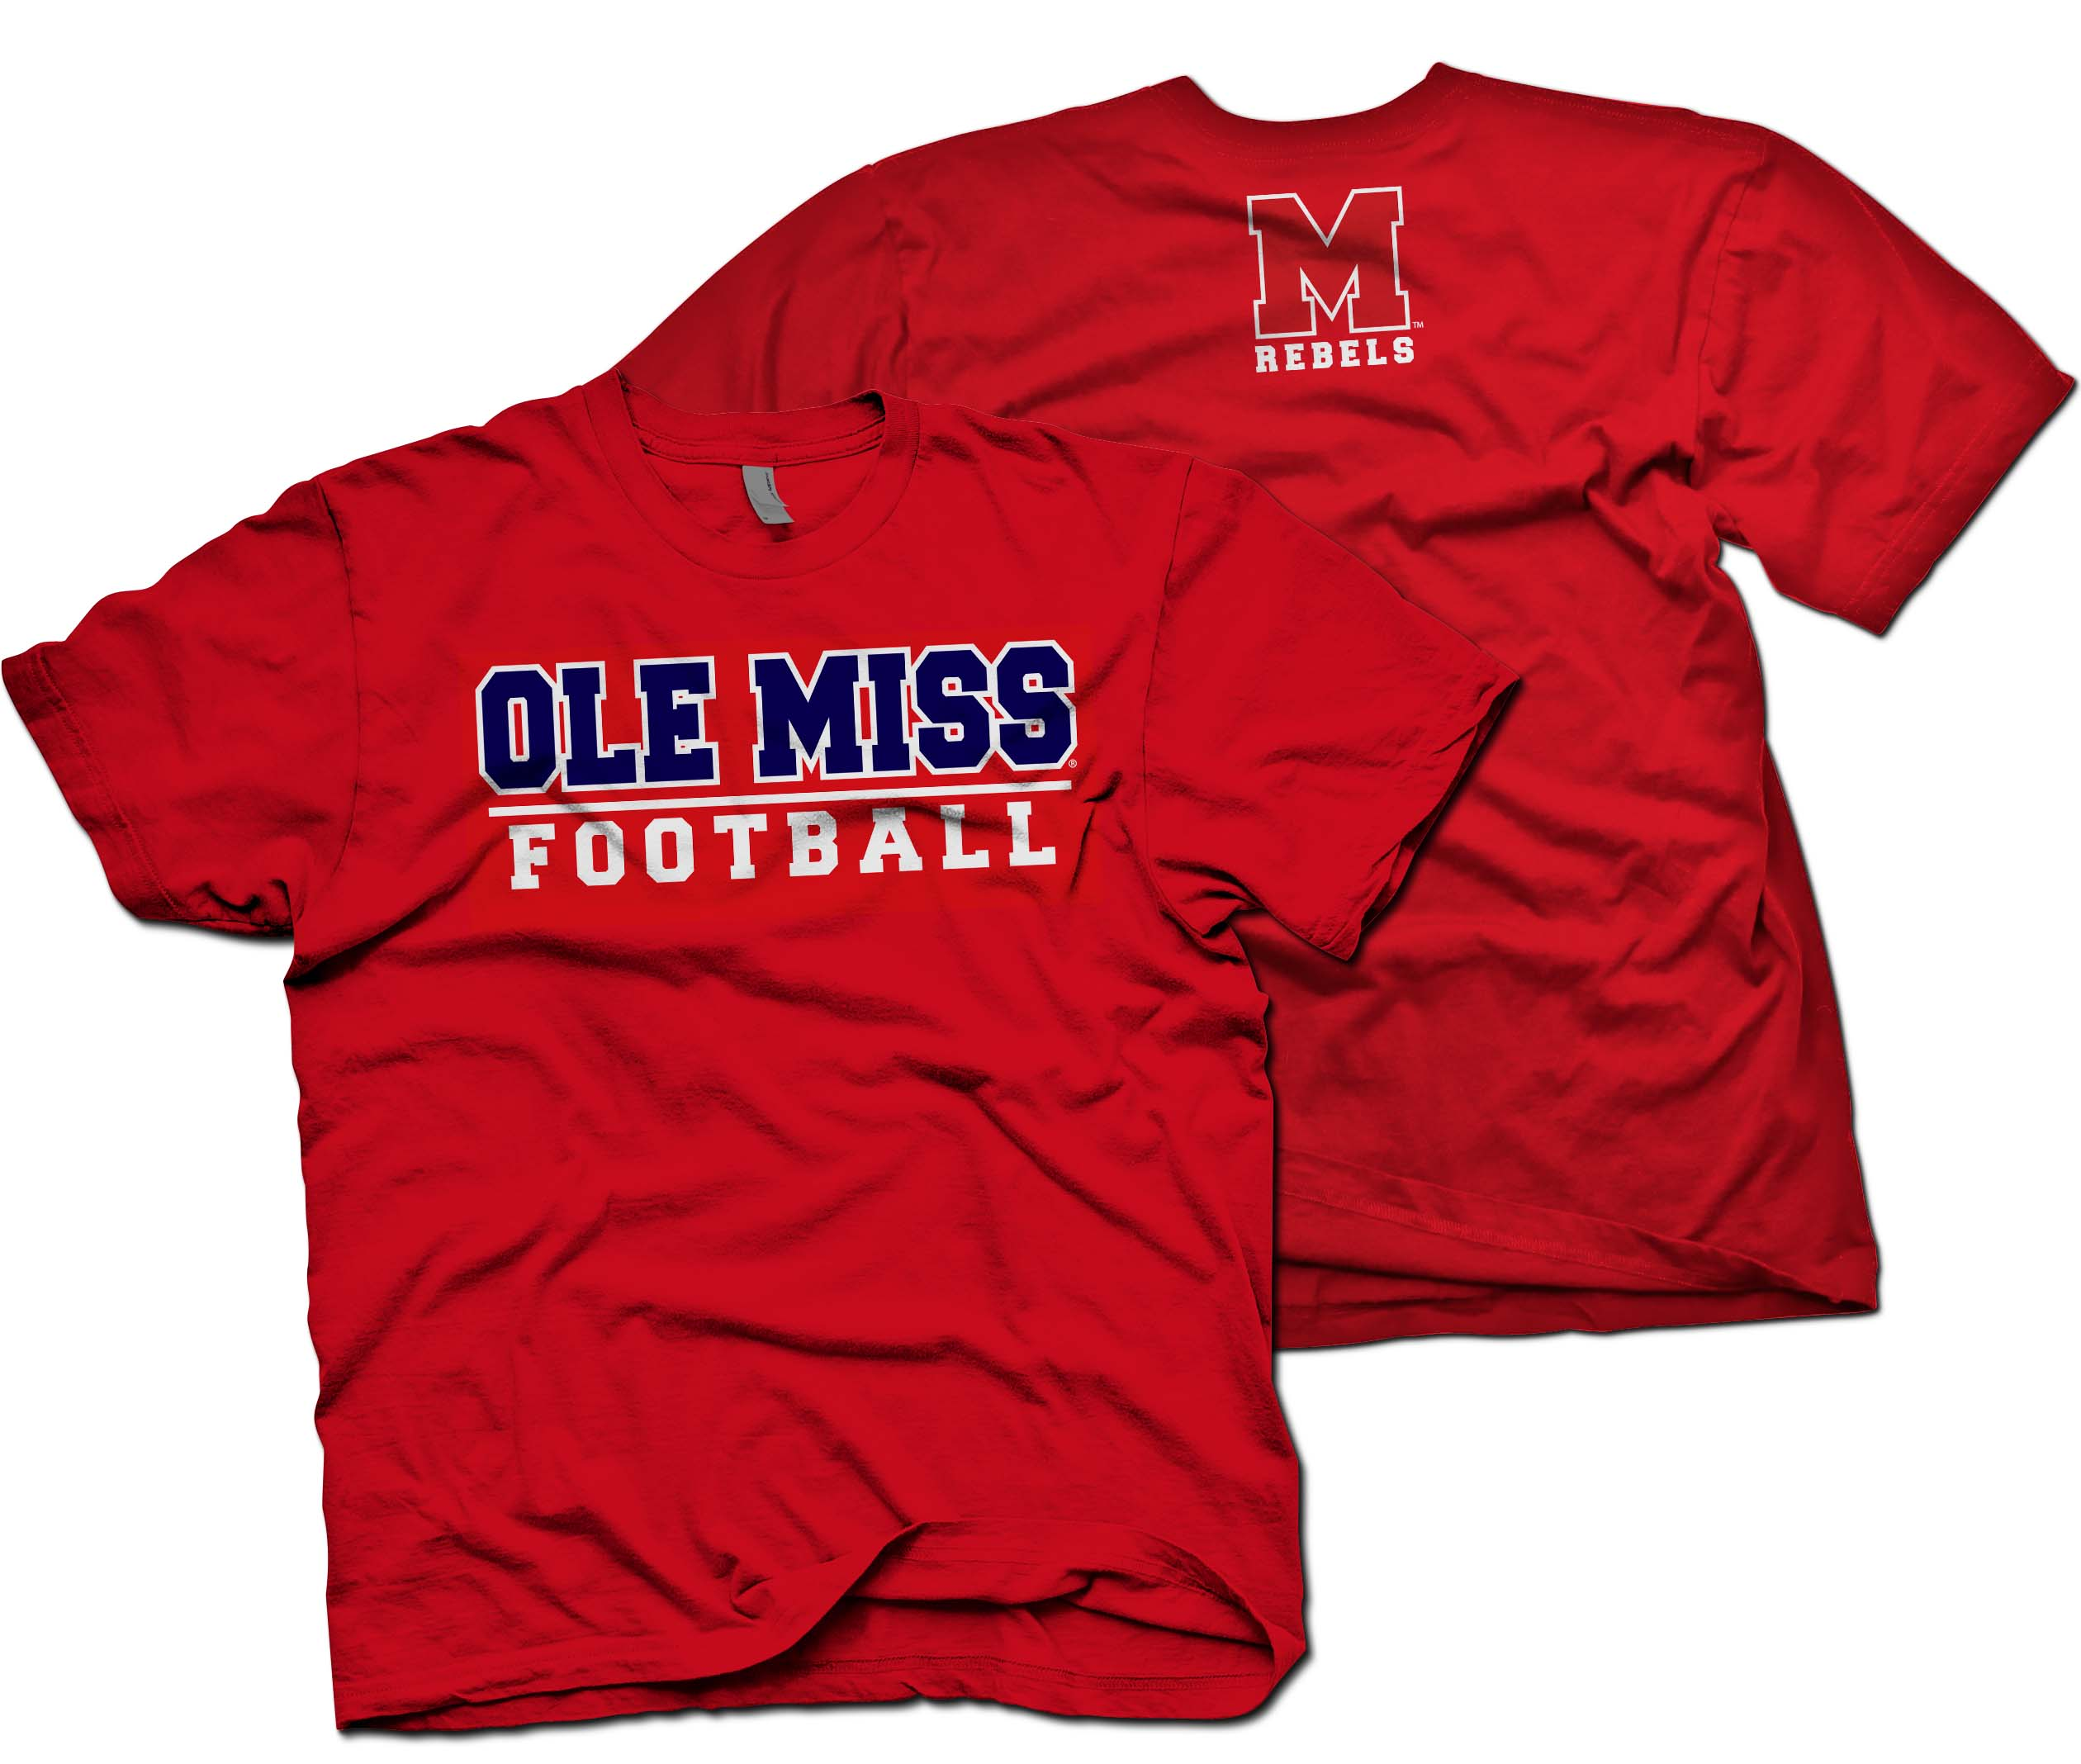 quality design 484b0 48811 Ole Miss Football-Red from Oxford Printwear